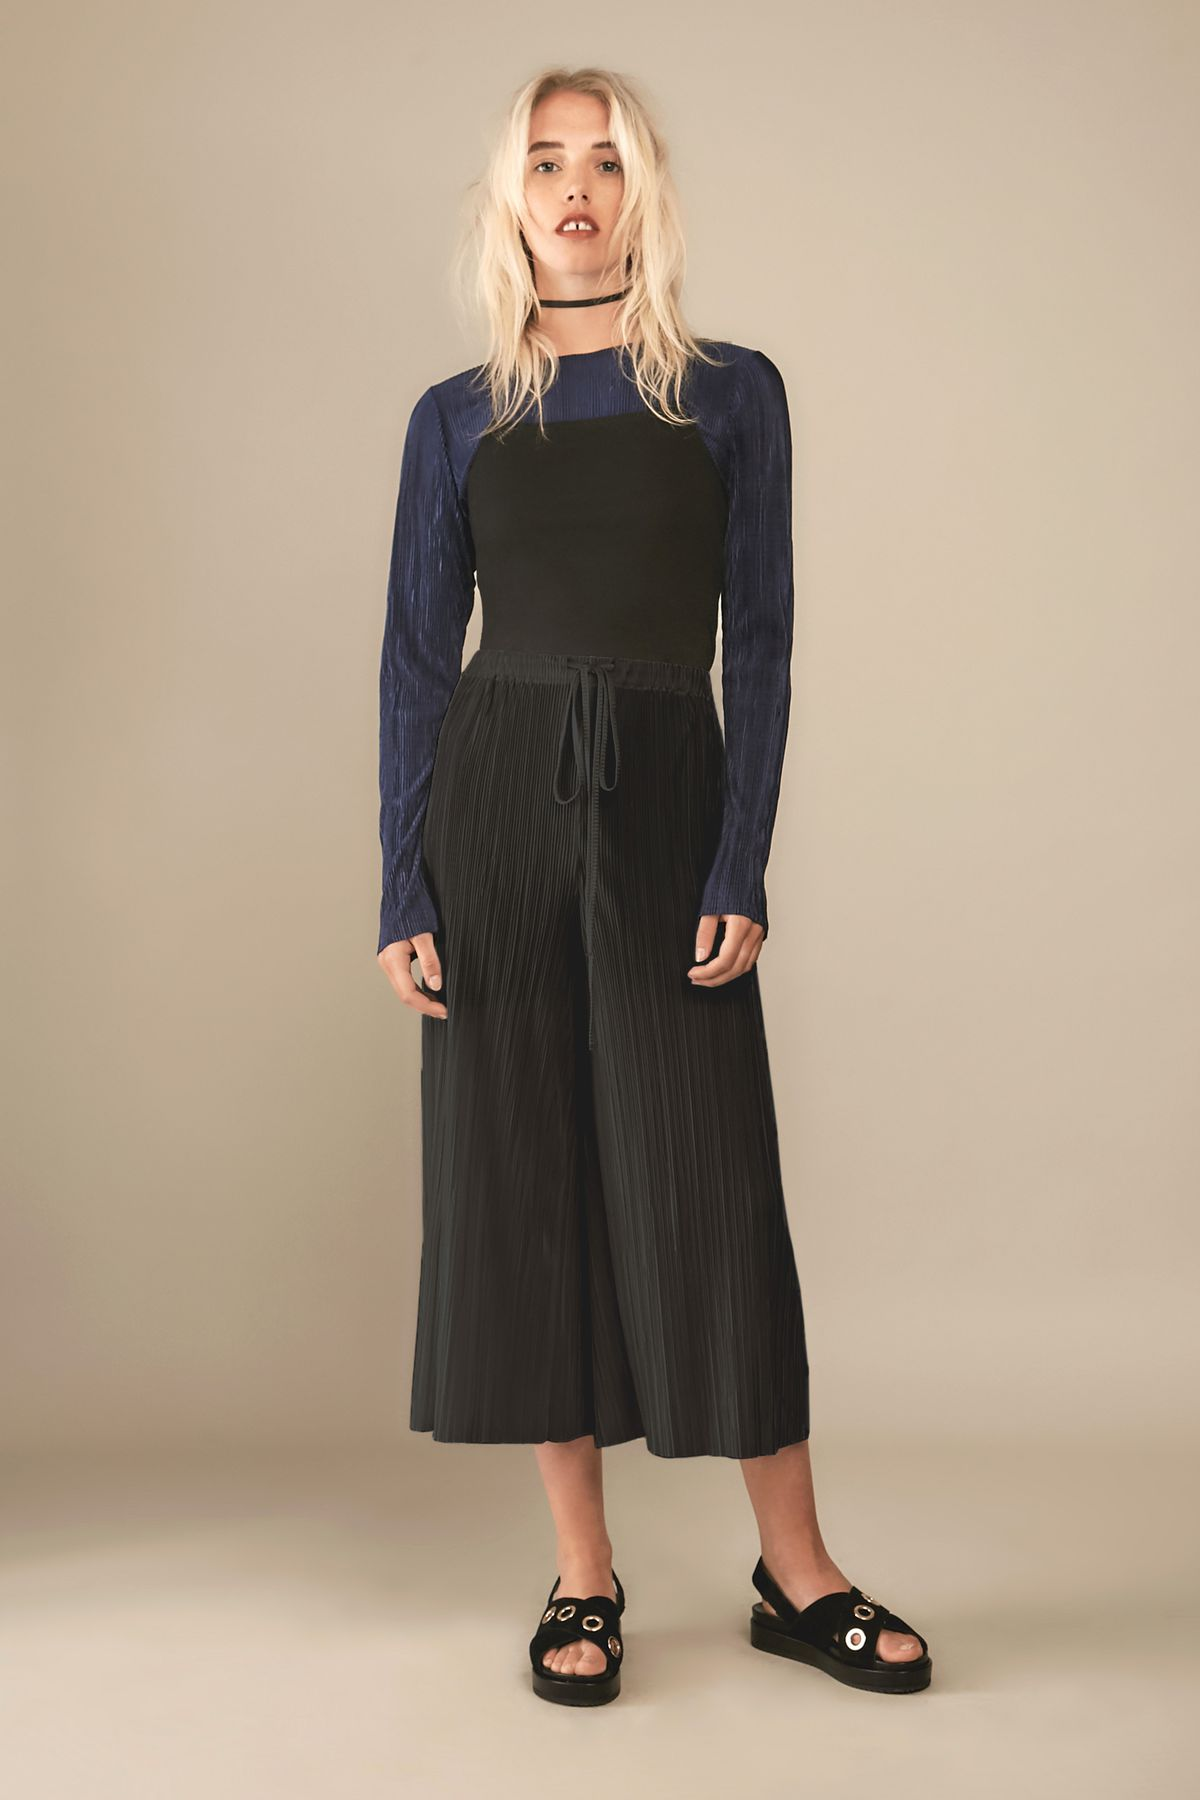 Blonde white model wearing black and navy outfit with black sandals